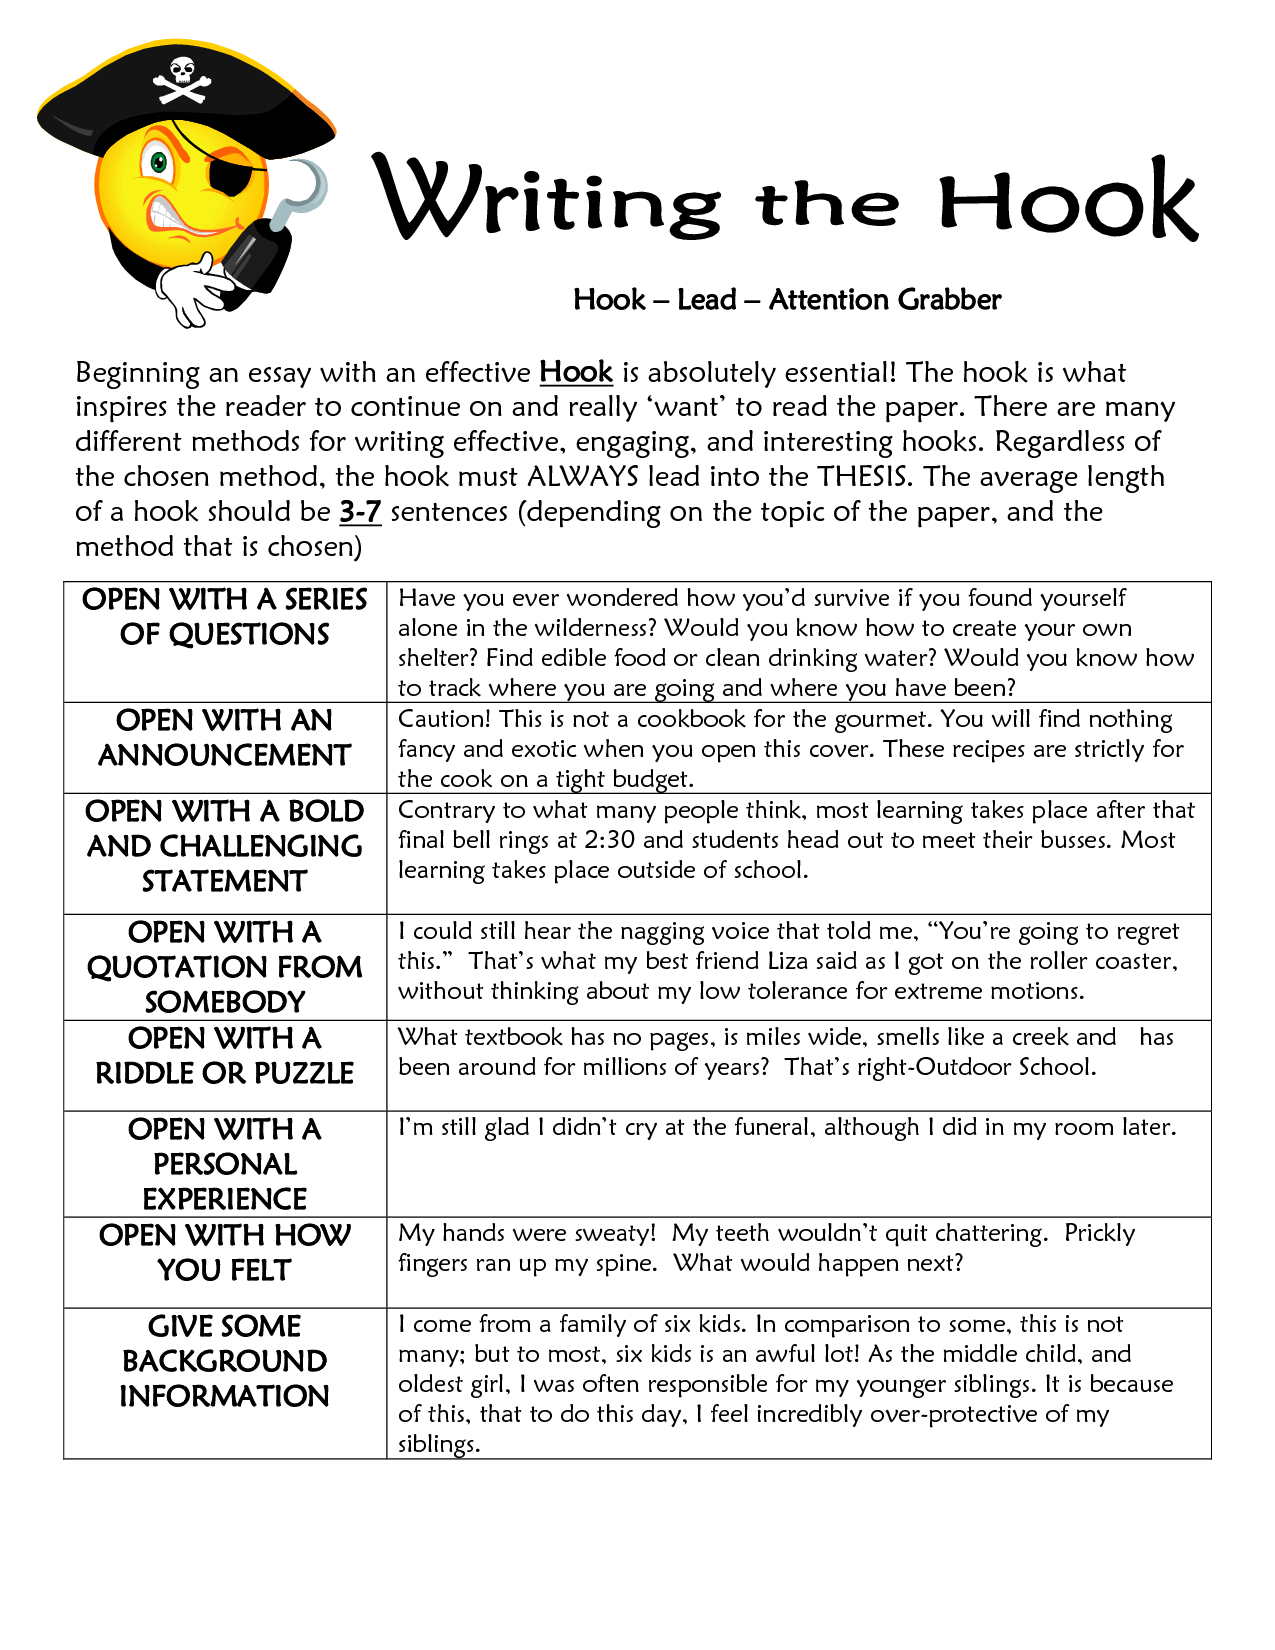 Hook for an essay